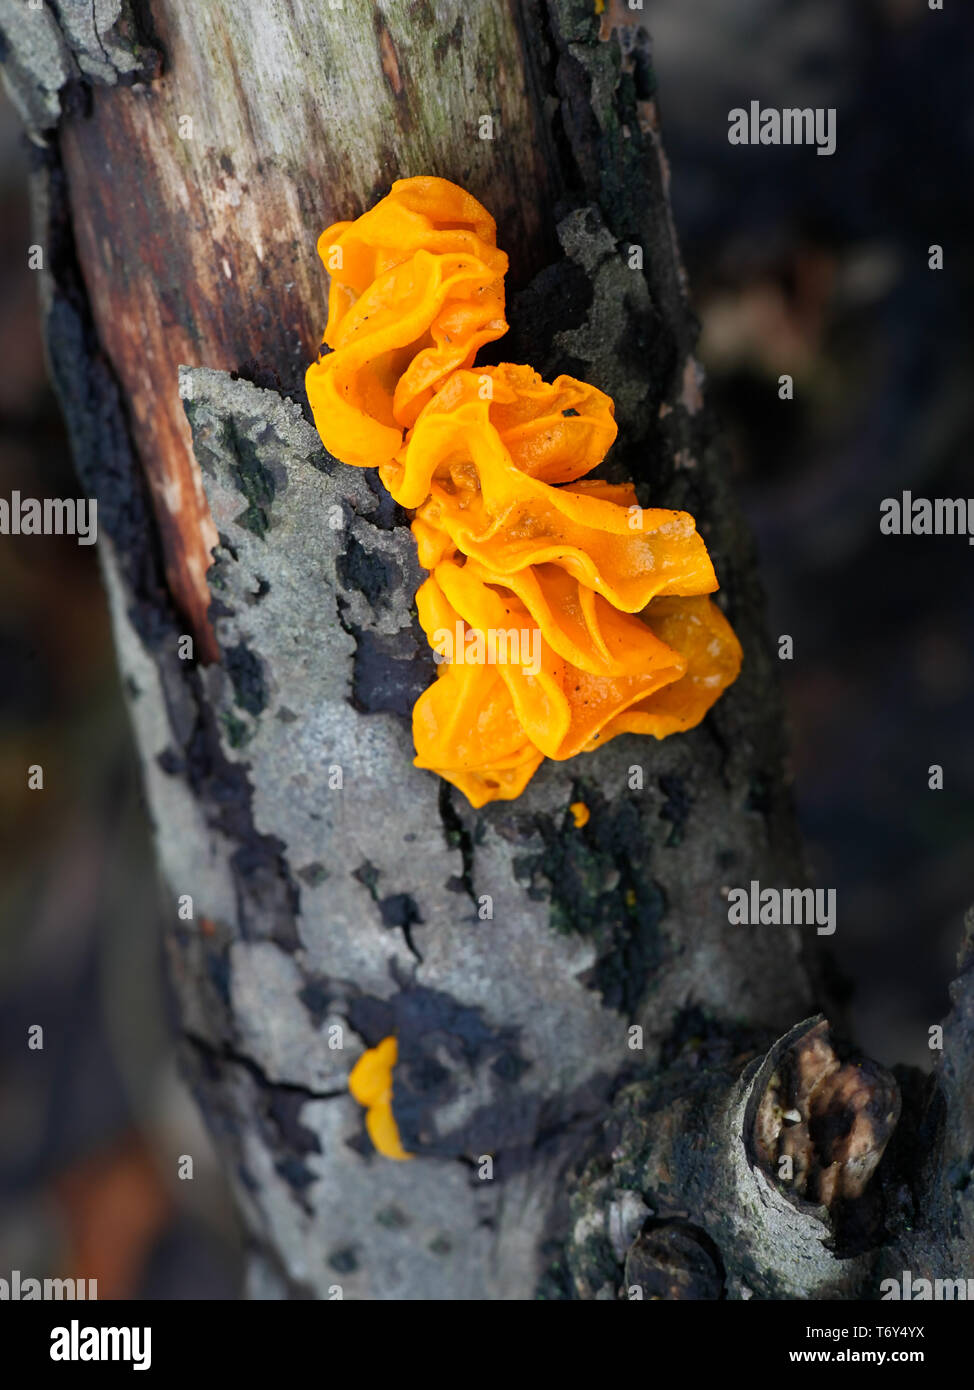 Tremella mesenterica, known as yellow brain, golden jelly fungus, yellow trembler, and witches' butter - Stock Image